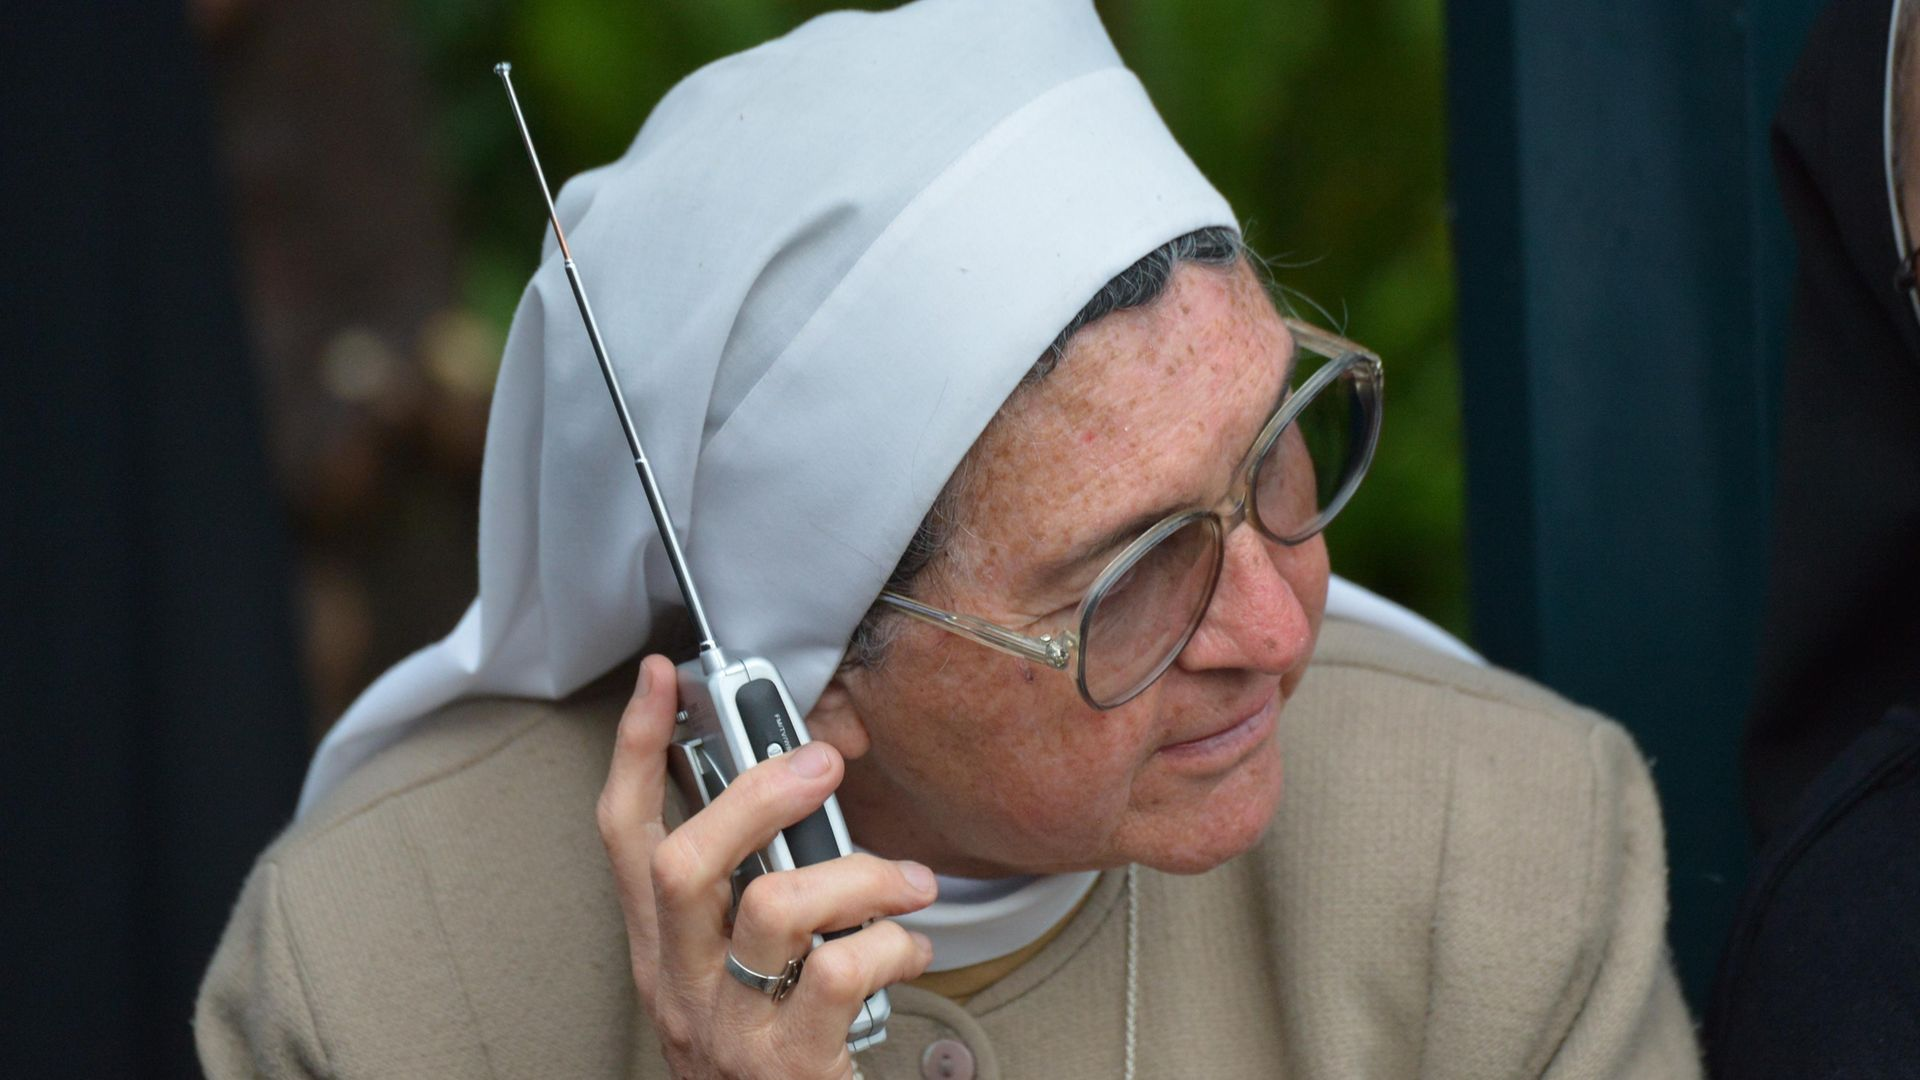 A nun listens to the radio in Ecuador, ahead of a 2015 visit by Pope Francis - Credit: Photo: Martin Bernett/AFP via Getty Images